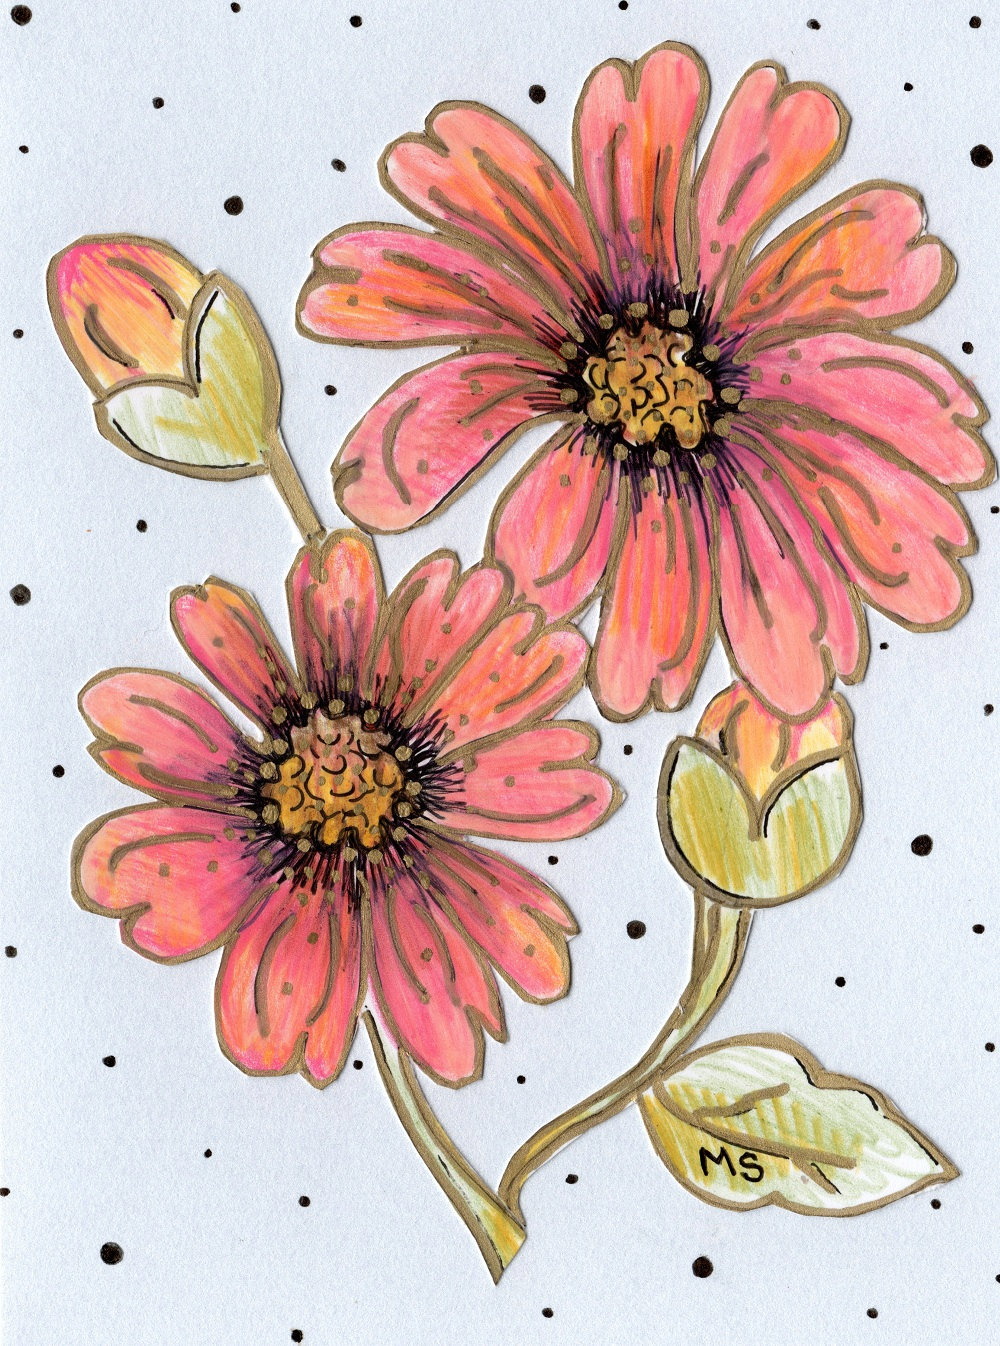 Dahlia flower drawing at getdrawings free for personal use 1000x1346 peach dahlia flower drawing izmirmasajfo